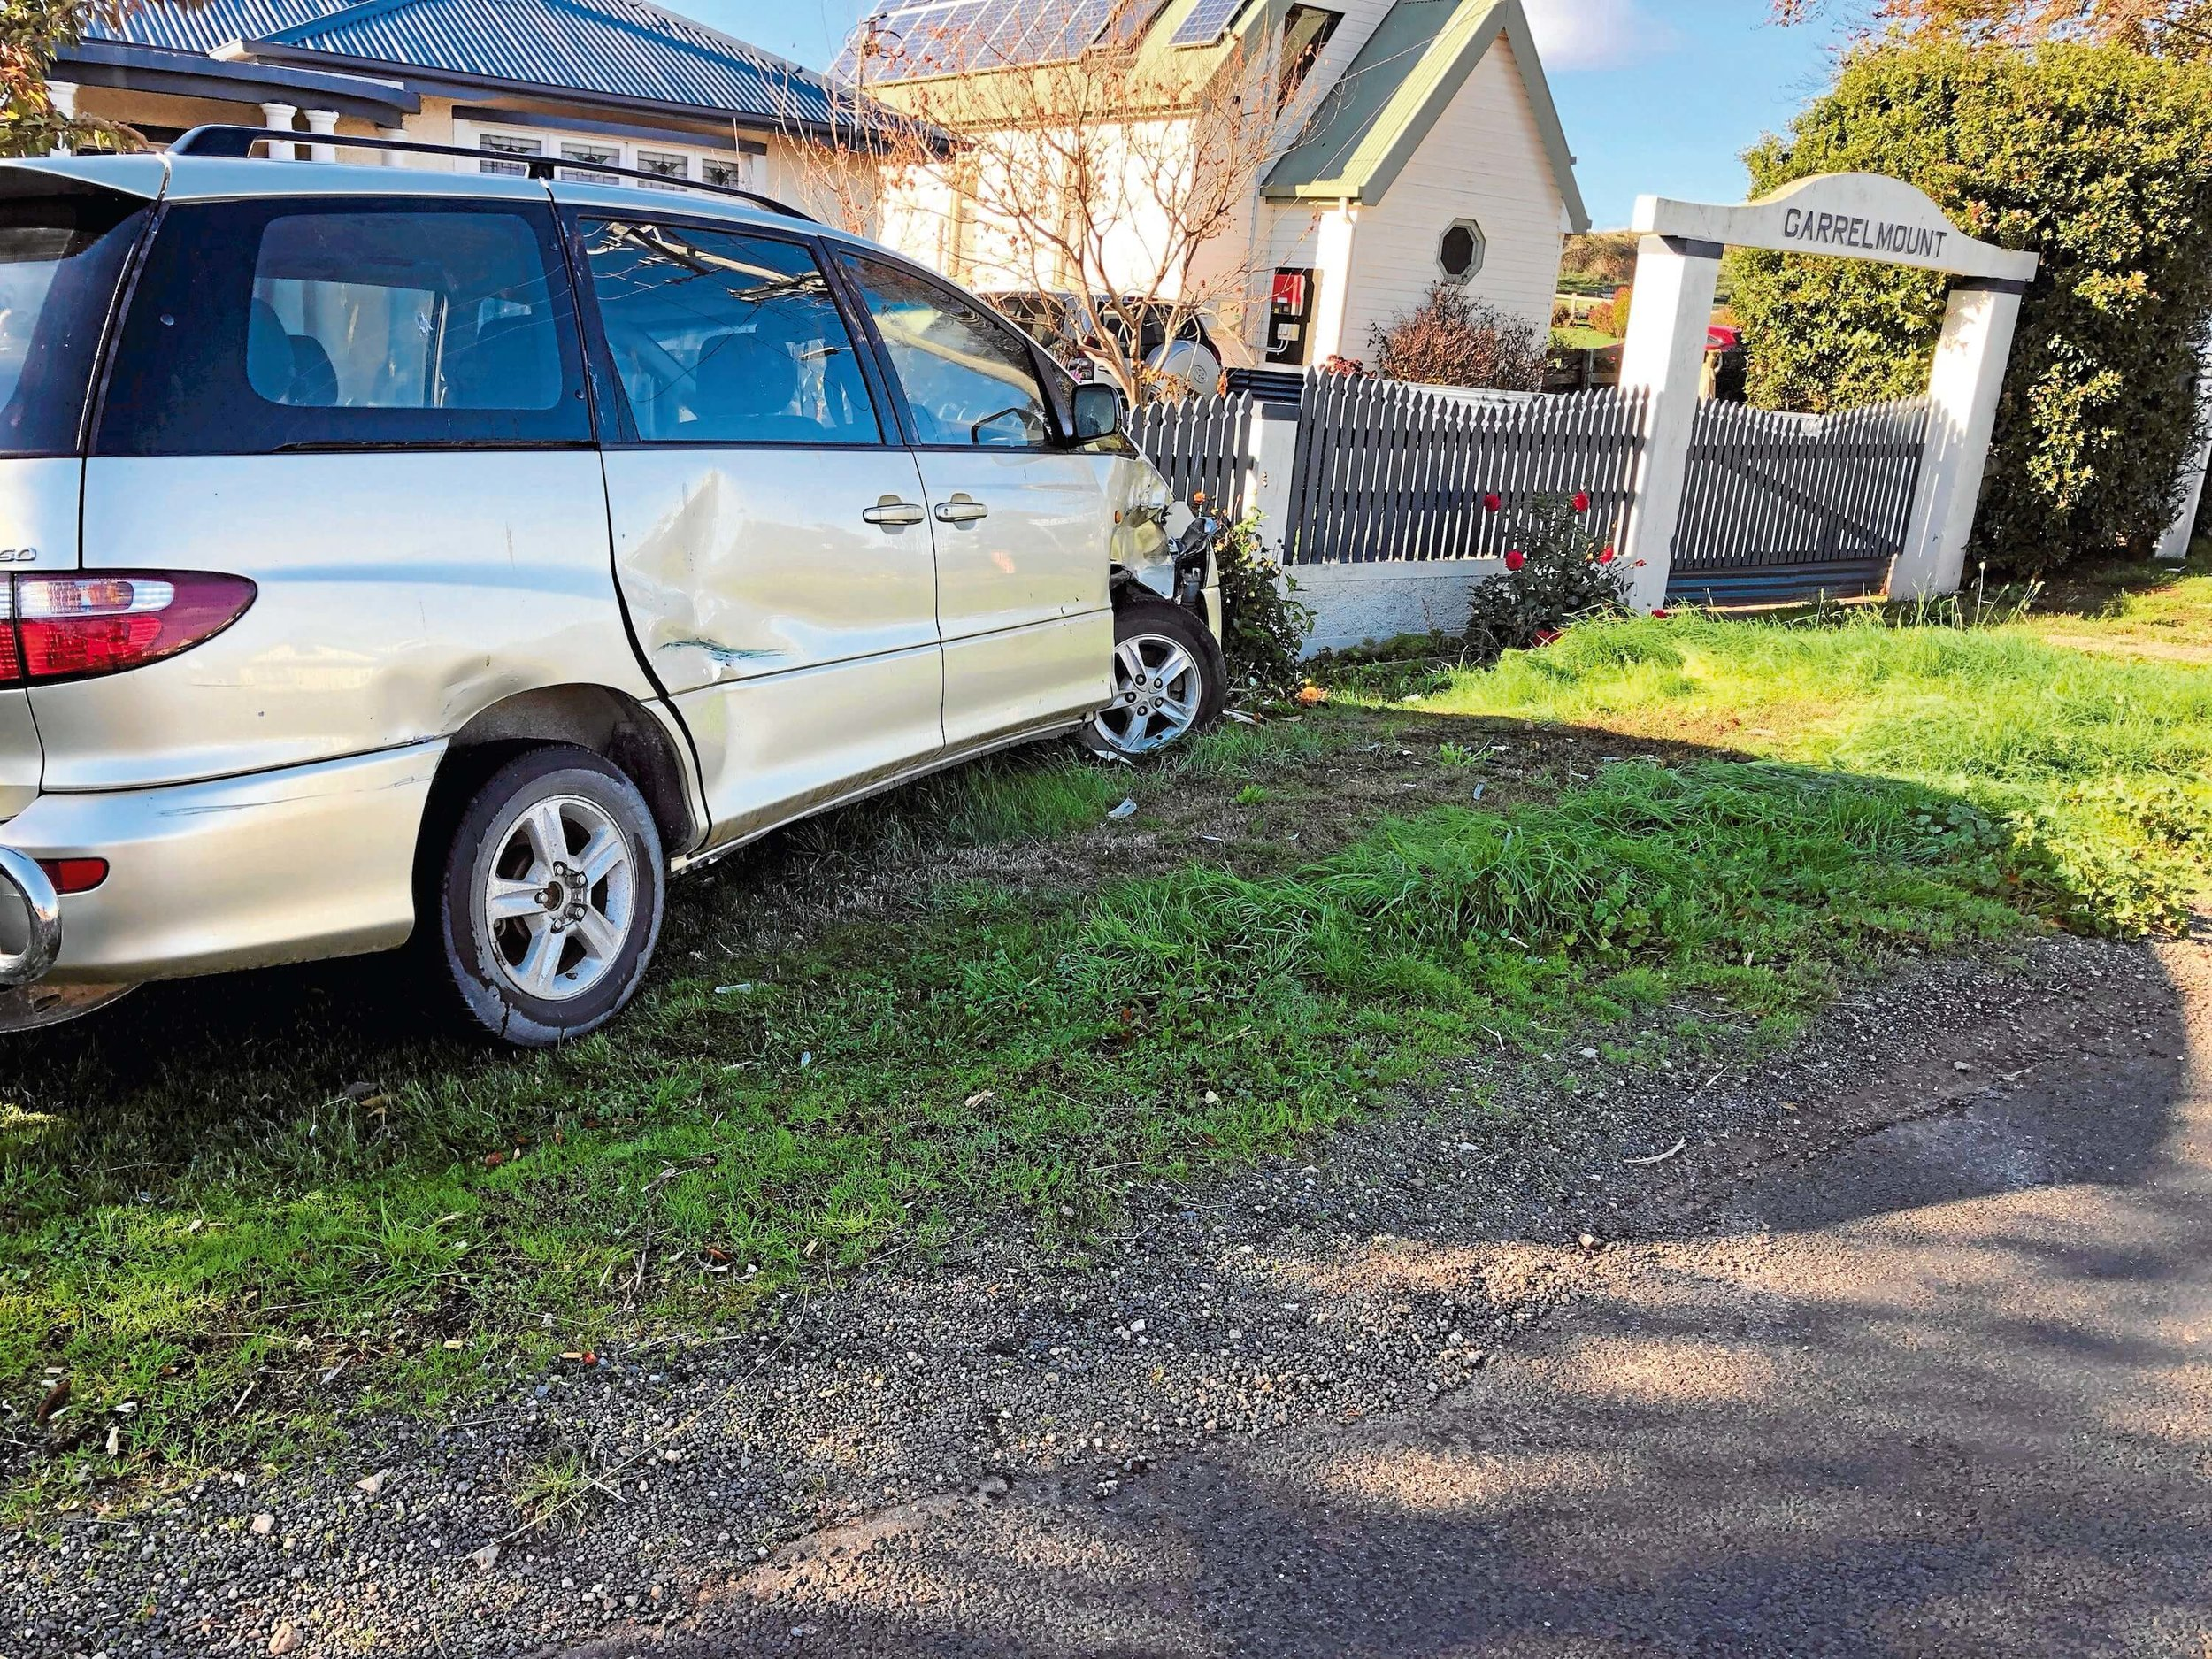 • This vehicle was severely hit during on Saturday night destroying the front and side; police have an open investigation to find the perpetrator.